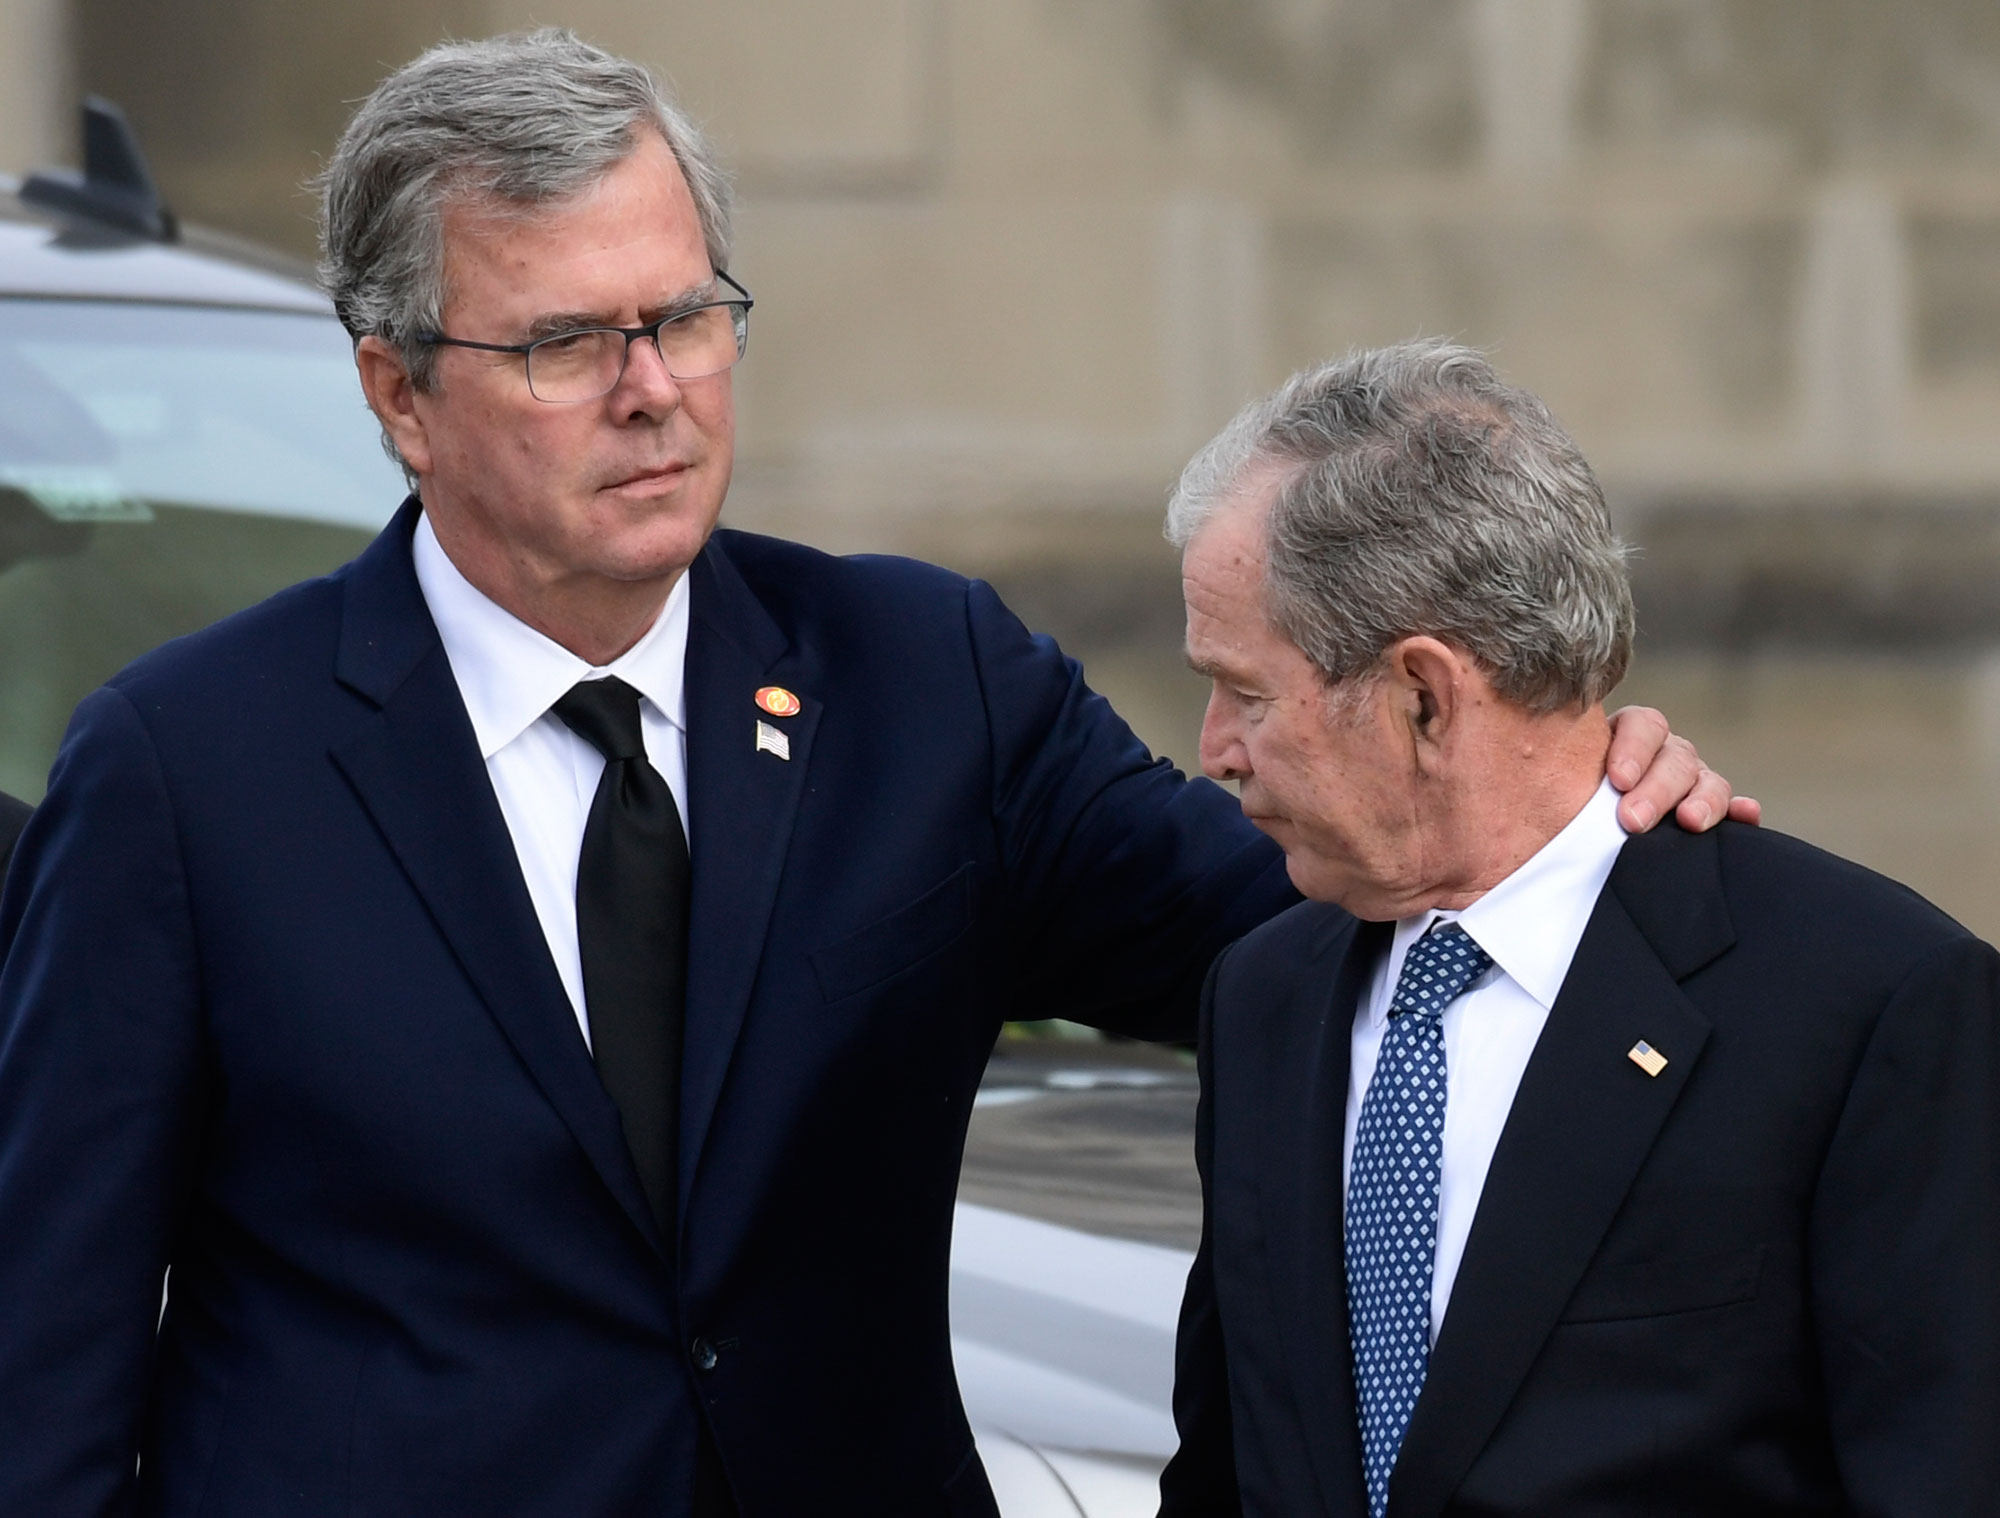 "<div class=""meta image-caption""><div class=""origin-logo origin-image none""><span>none</span></div><span class=""caption-text"">Former Florida Gov. Jeb Bush, left, reaches out to his brother, former President George W. Bush, right, arrive. (Susan Walsh/AP Photo)</span></div>"